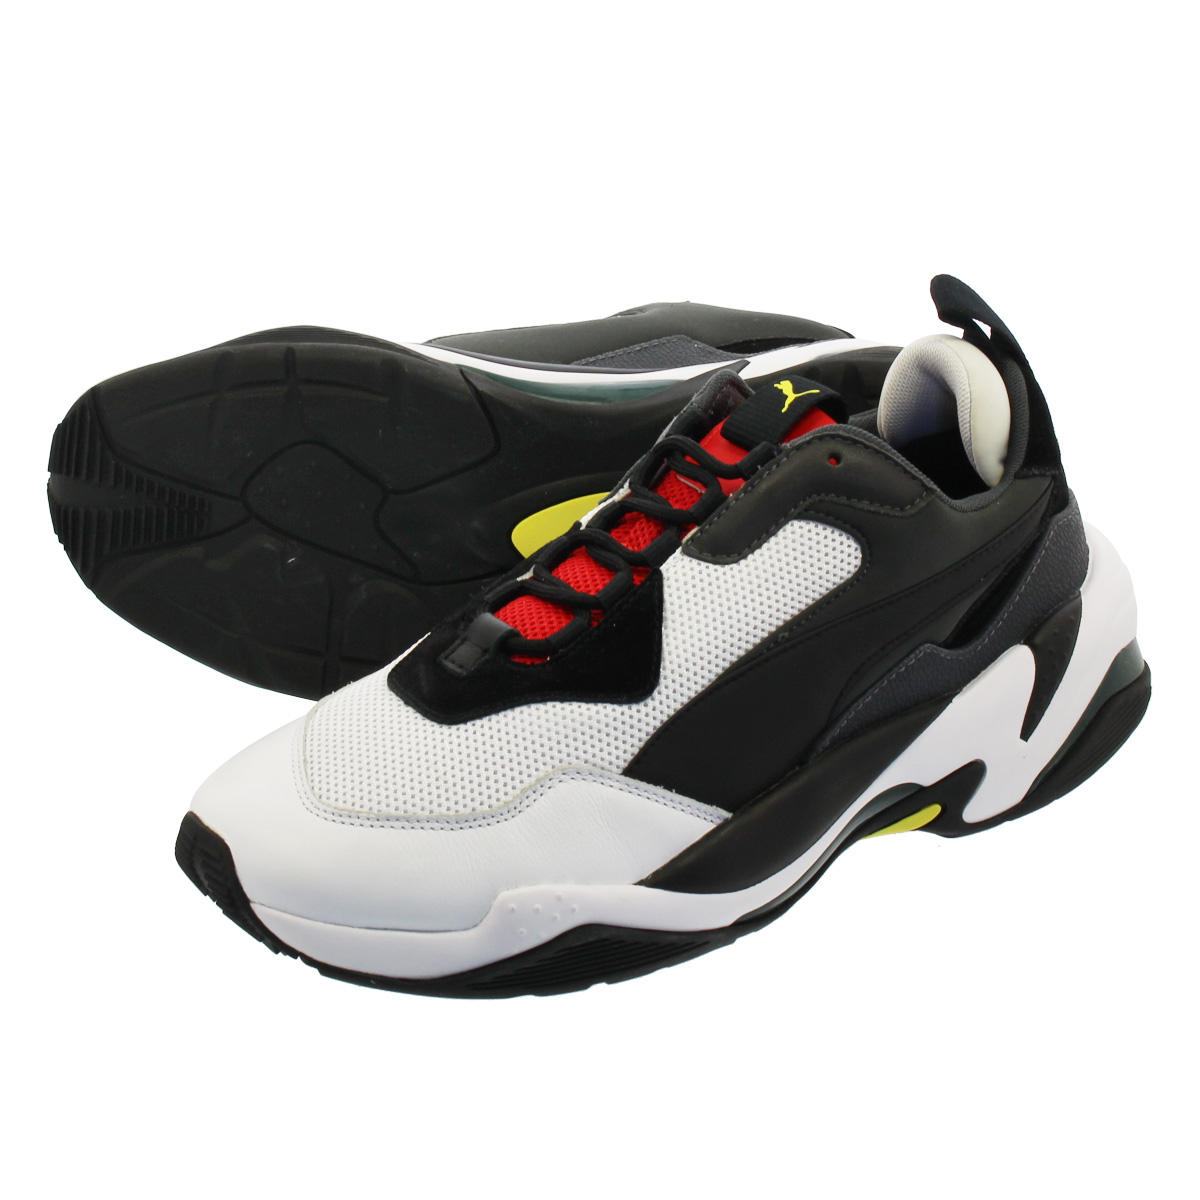 PUMA THUNDER SPECTRA プーマ サンダー スペクトル BLACK/HIGH RISK RED 367516-07